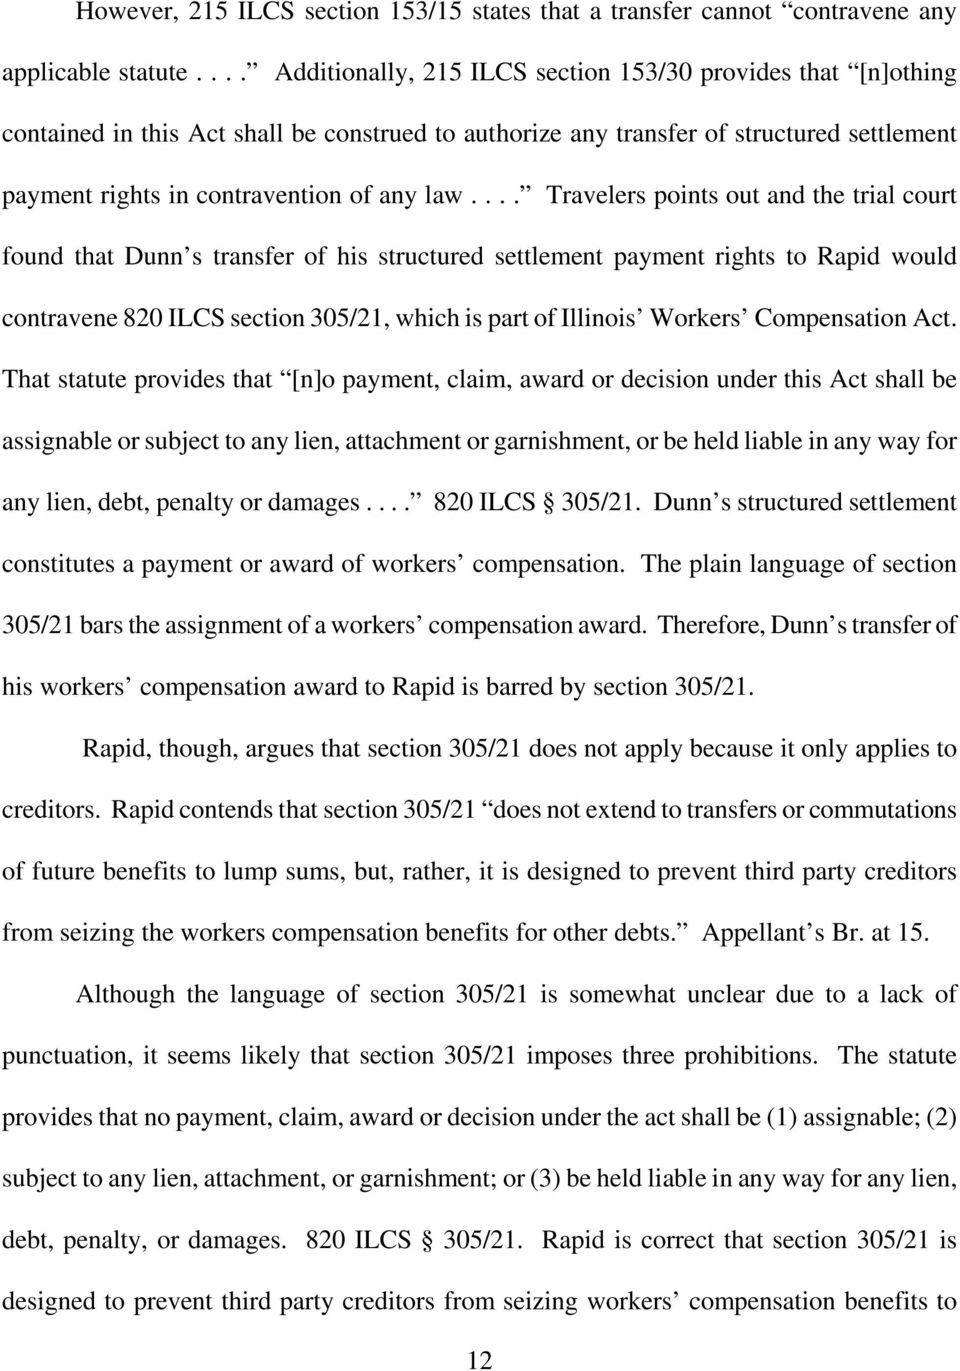 ... Travelers points out and the trial court found that Dunn s transfer of his structured settlement payment rights to Rapid would contravene 820 ILCS section 305/21, which is part of Illinois